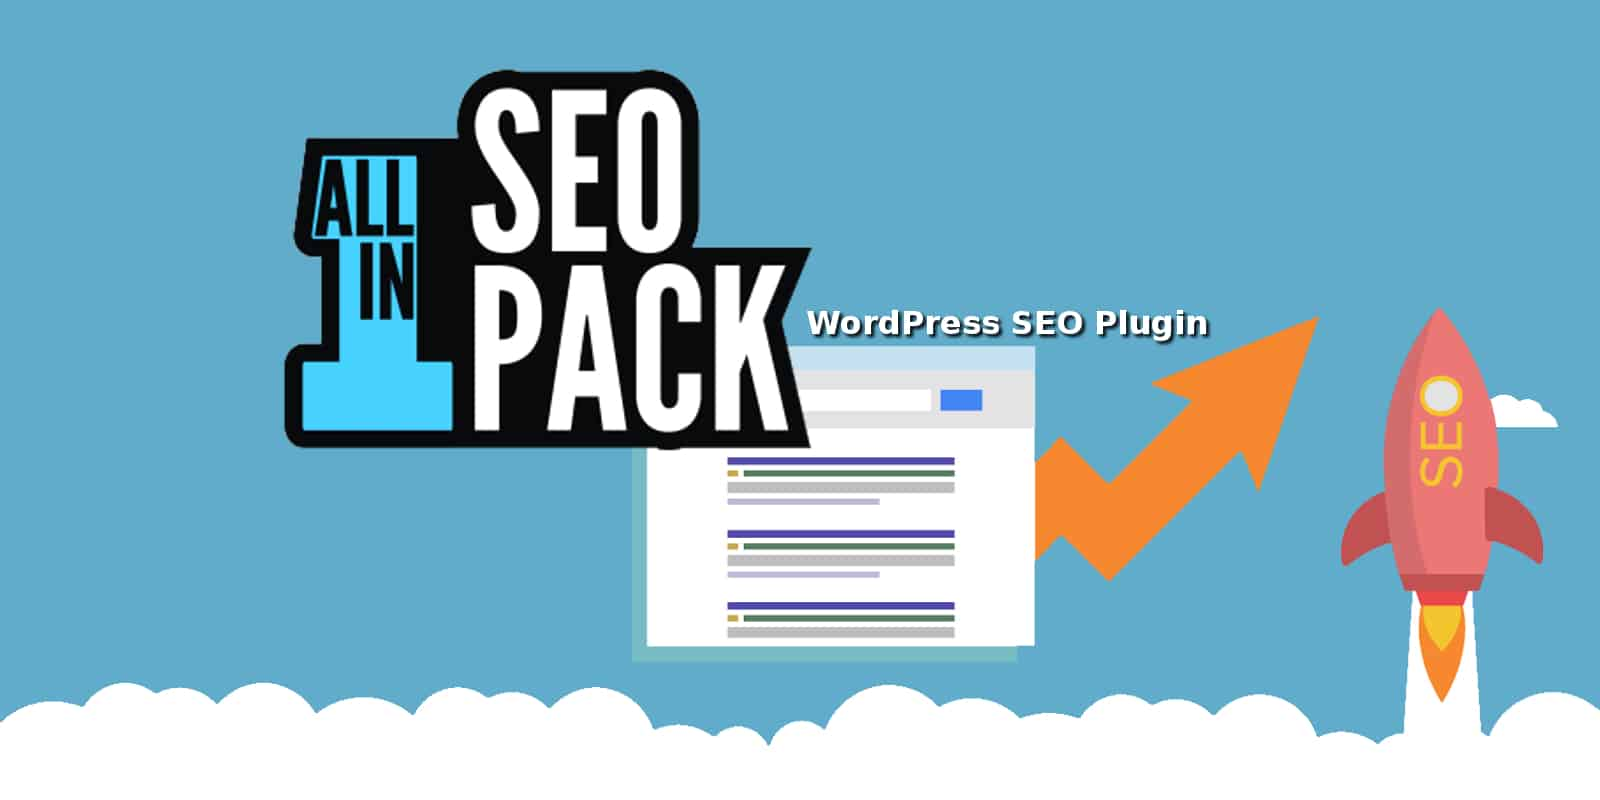 All in One SEO Pack Pro Wordpress Plugin The Best Wordpress SEO Plugin